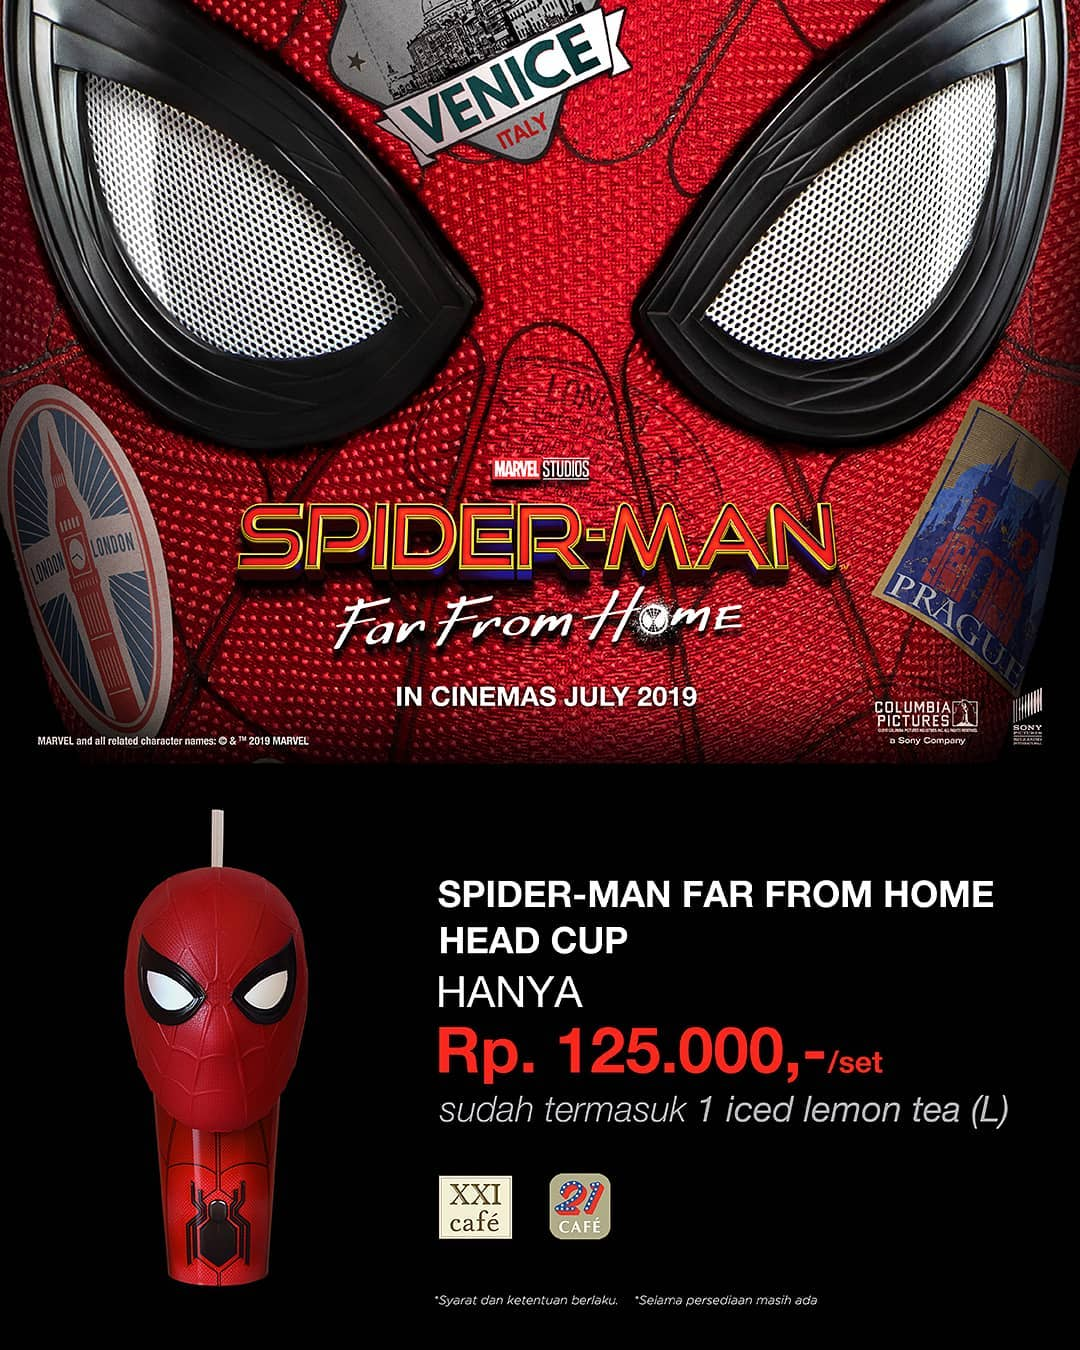 XXI CAFE Promo Special Limited Spiderman : Far From Home Head Cup